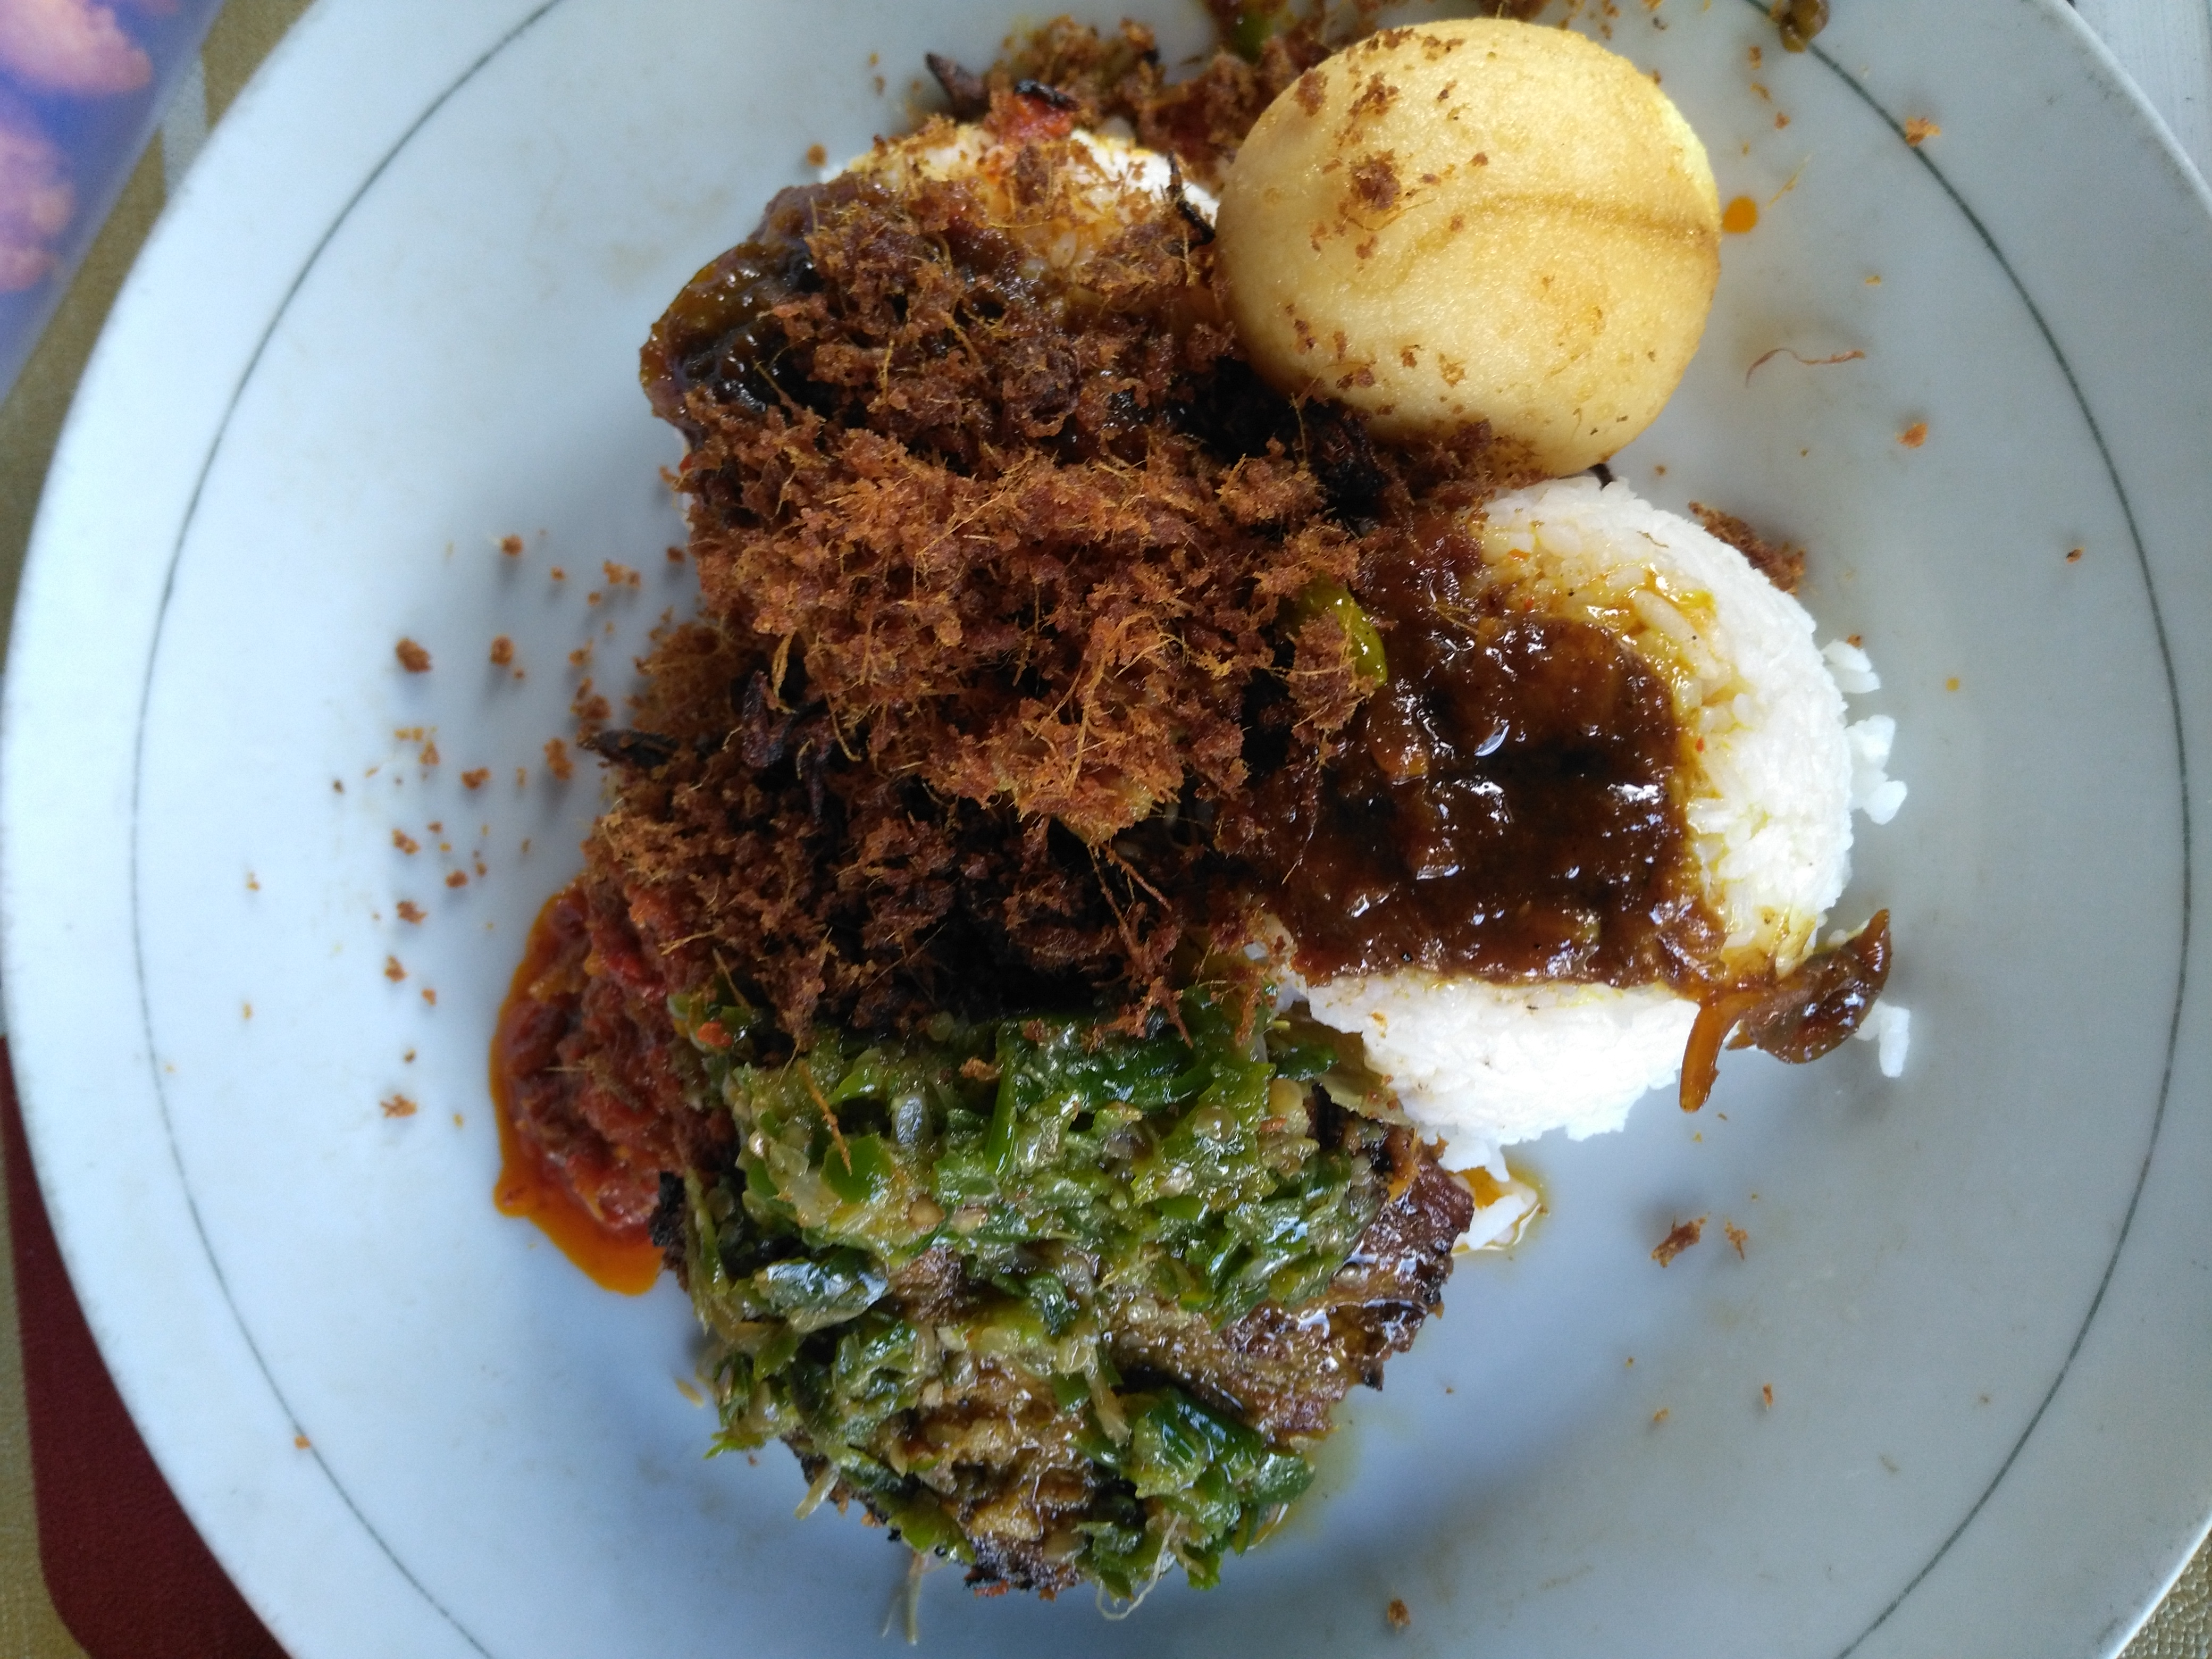 Dendeng (barbecue beef), Telur Bulat (hardboiled, curried egg), and Nasi Putih (rice) for a happy lunch.